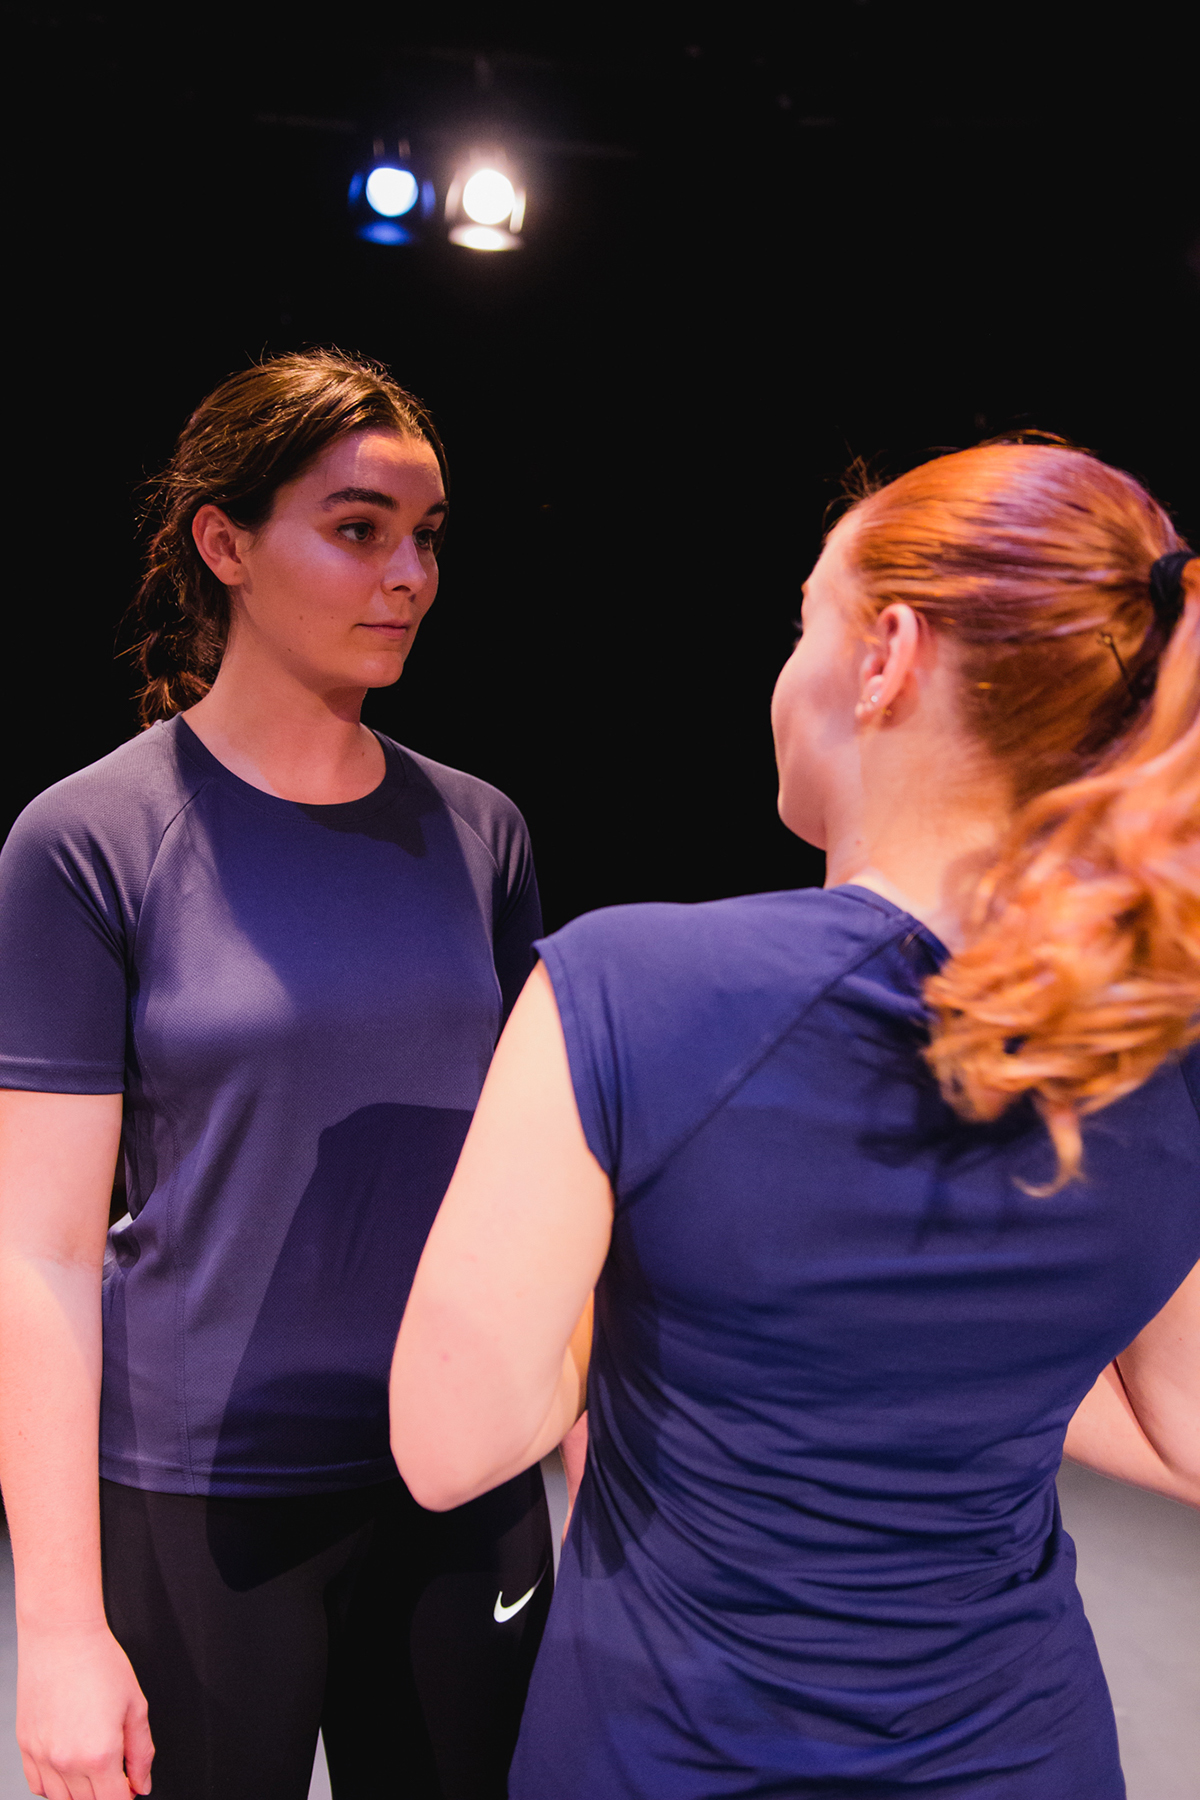 The performance makers: Jessica Russell, Phoebe Sullivan